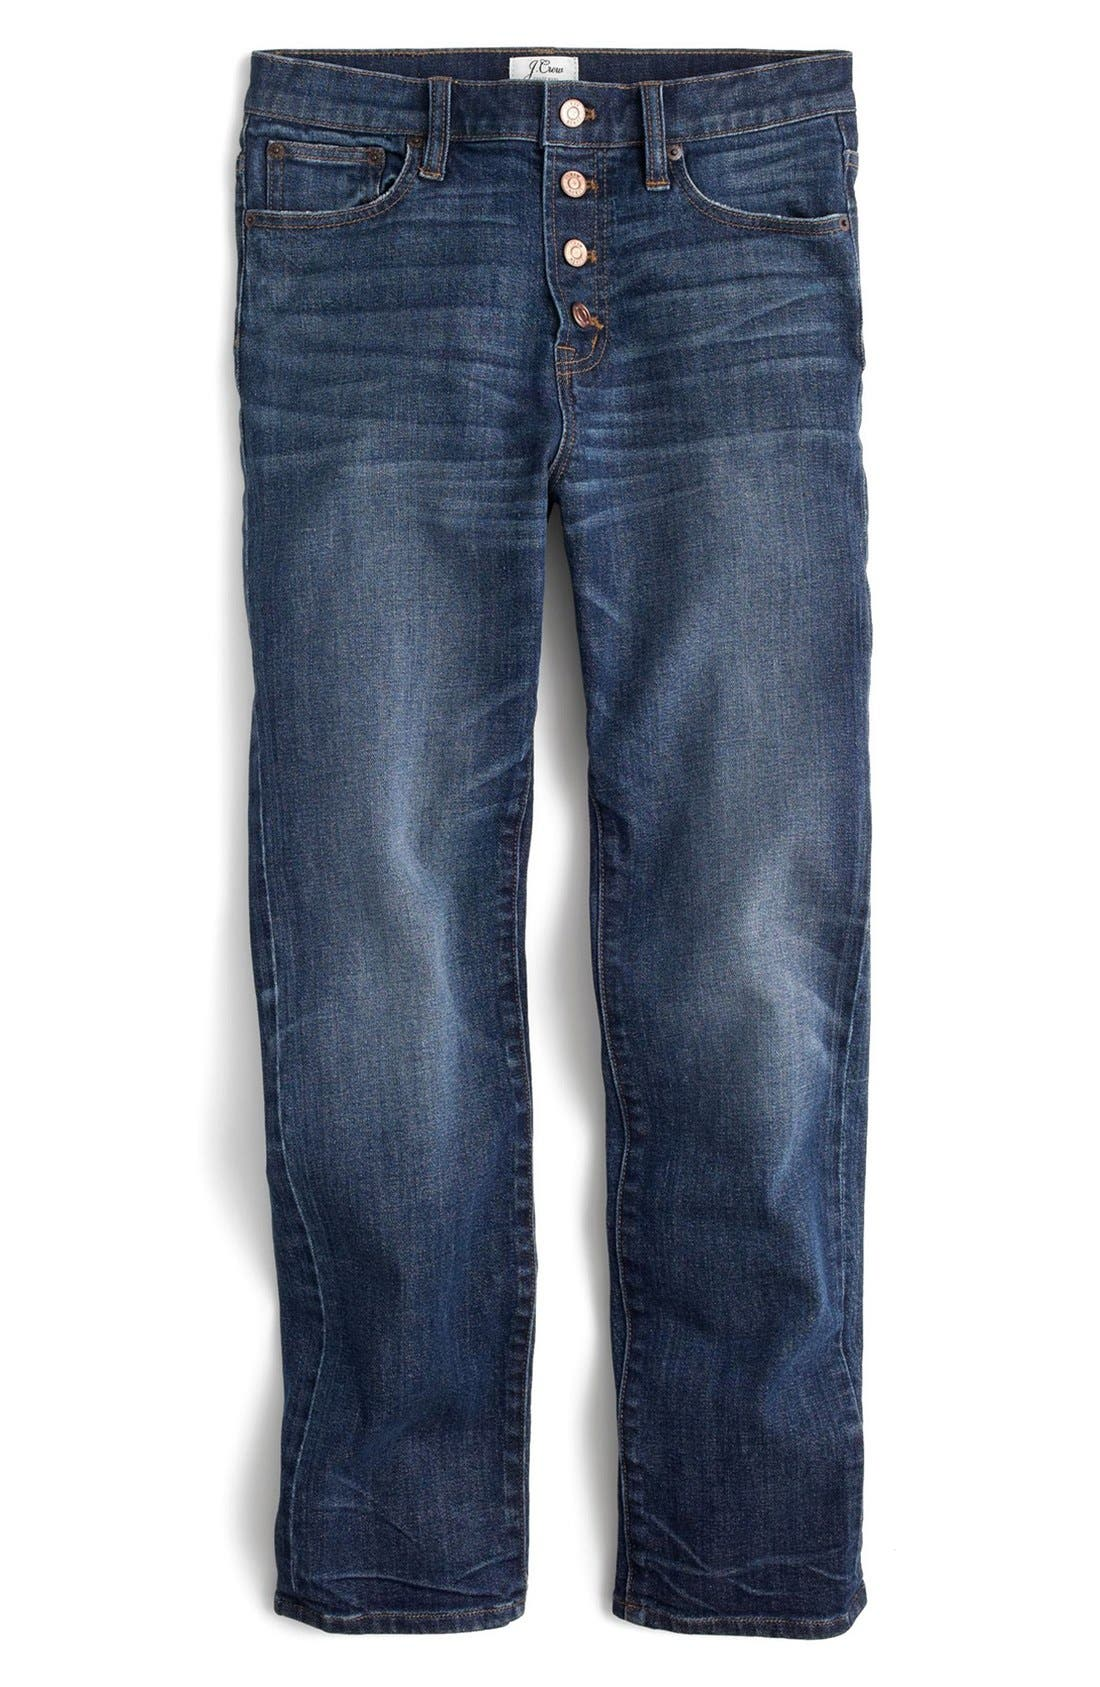 Alternate Image 3  - J.Crew 'Straight Away' Stretch High Rise Crop Jeans